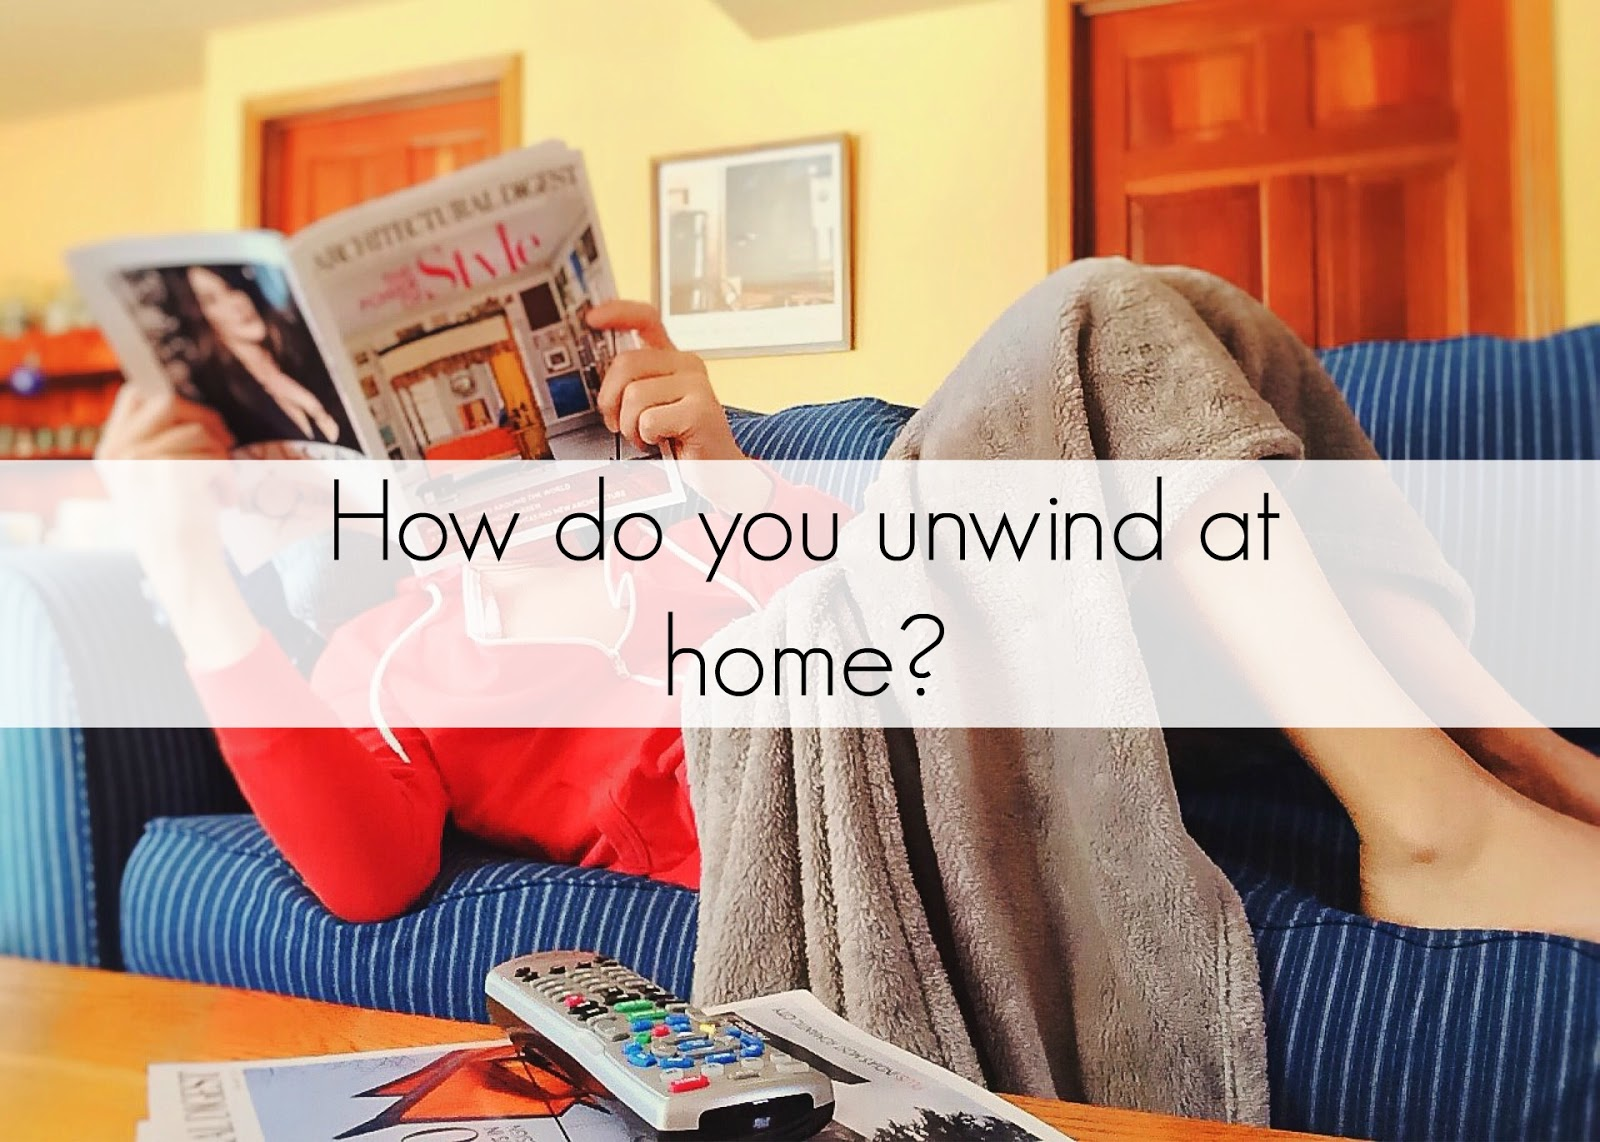 What do parents do to unwind at home?